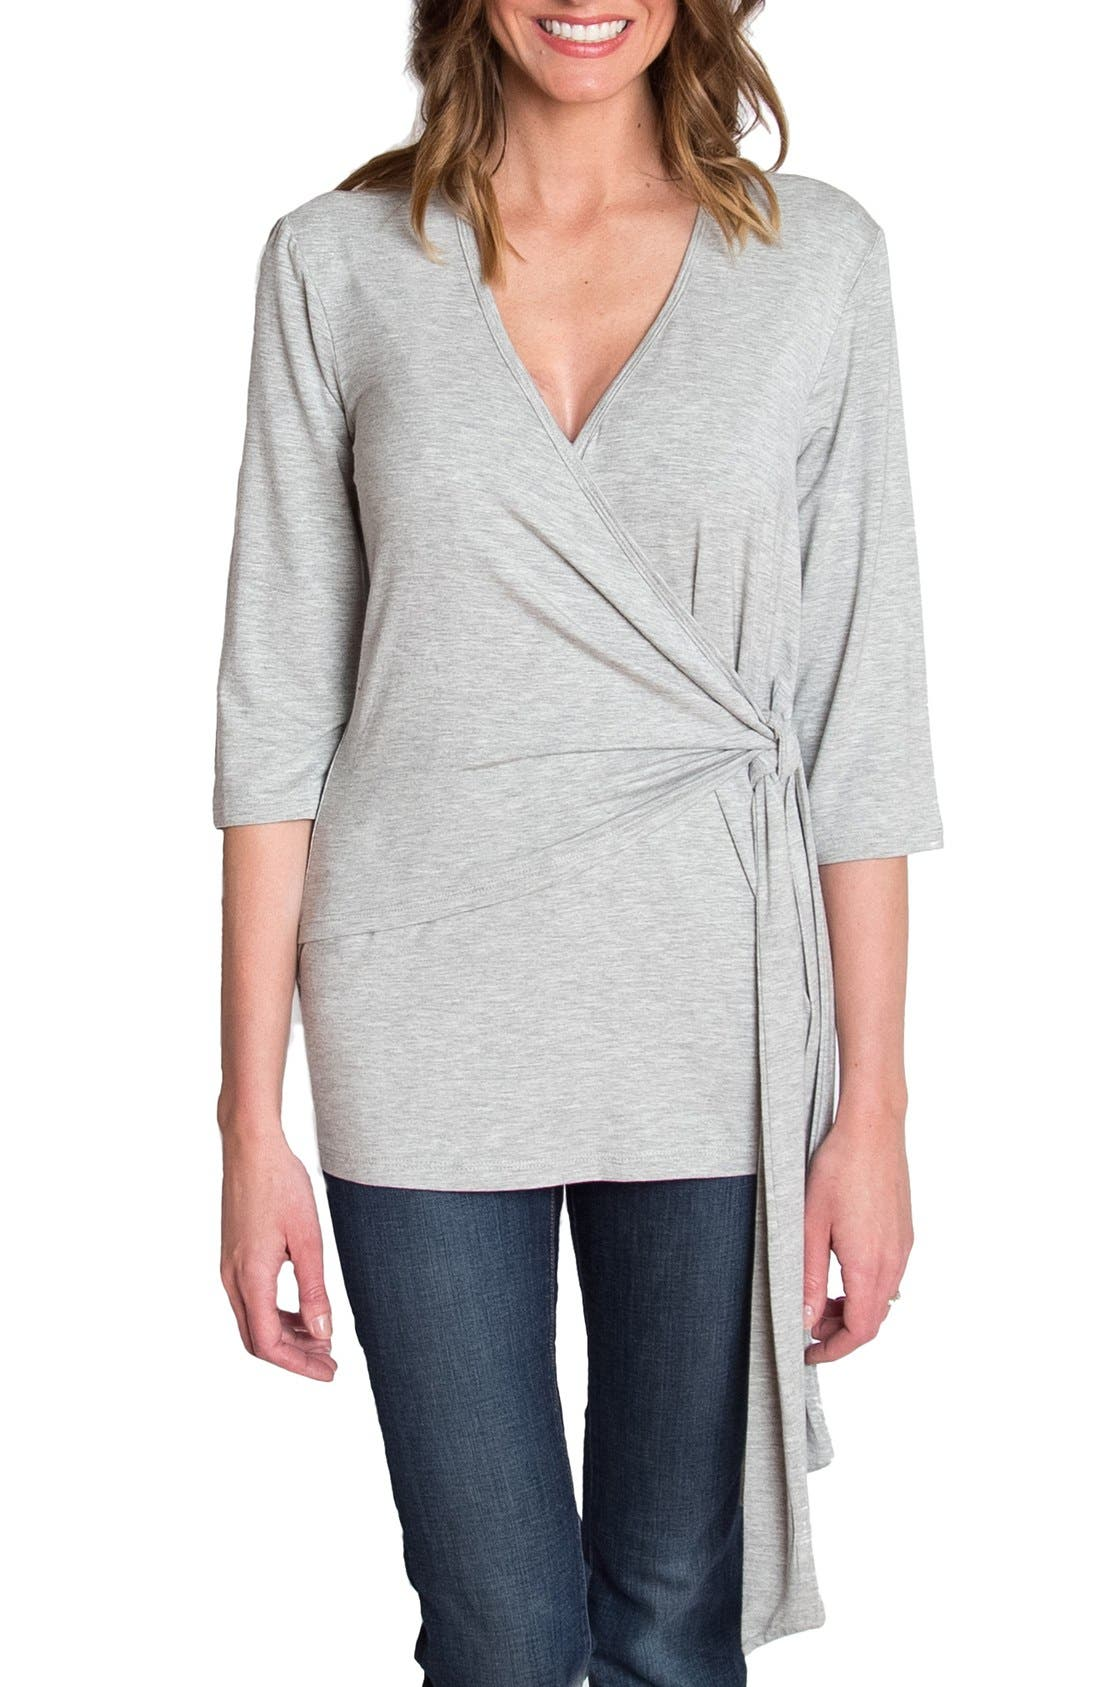 Whimsical Nursing Wrap Top,                         Main,                         color, HEATHER GRAY